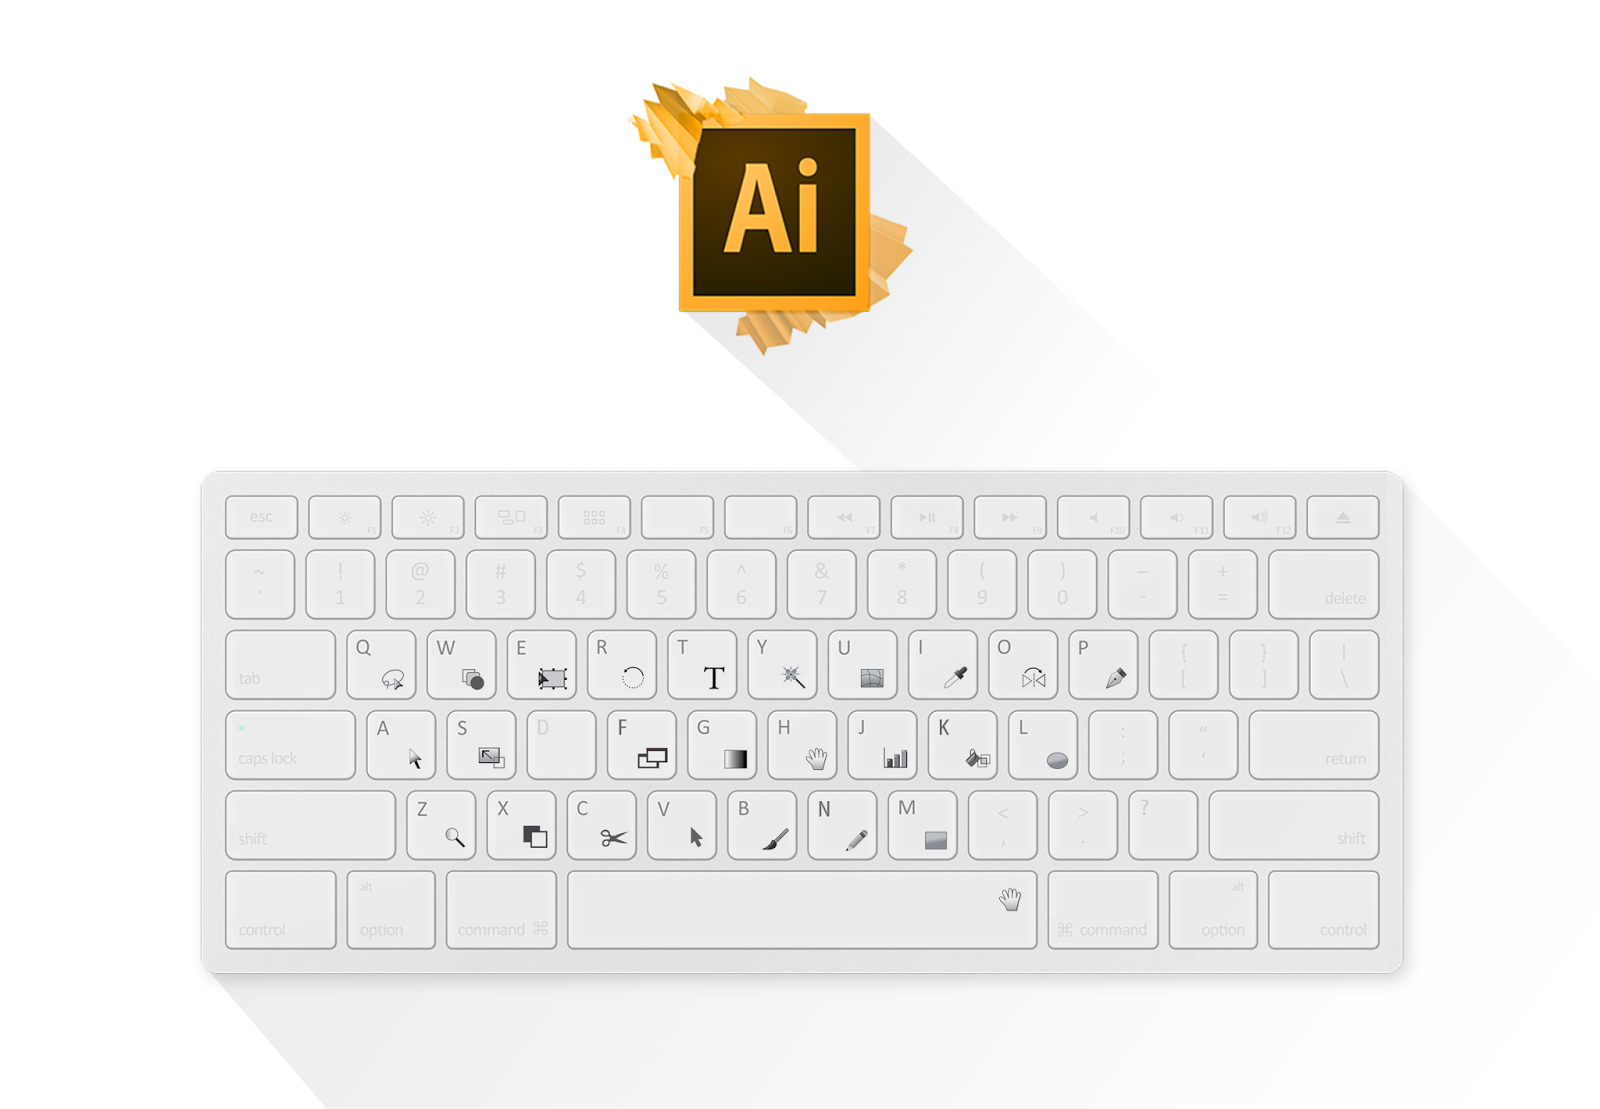 Illustrator Shortcut Key